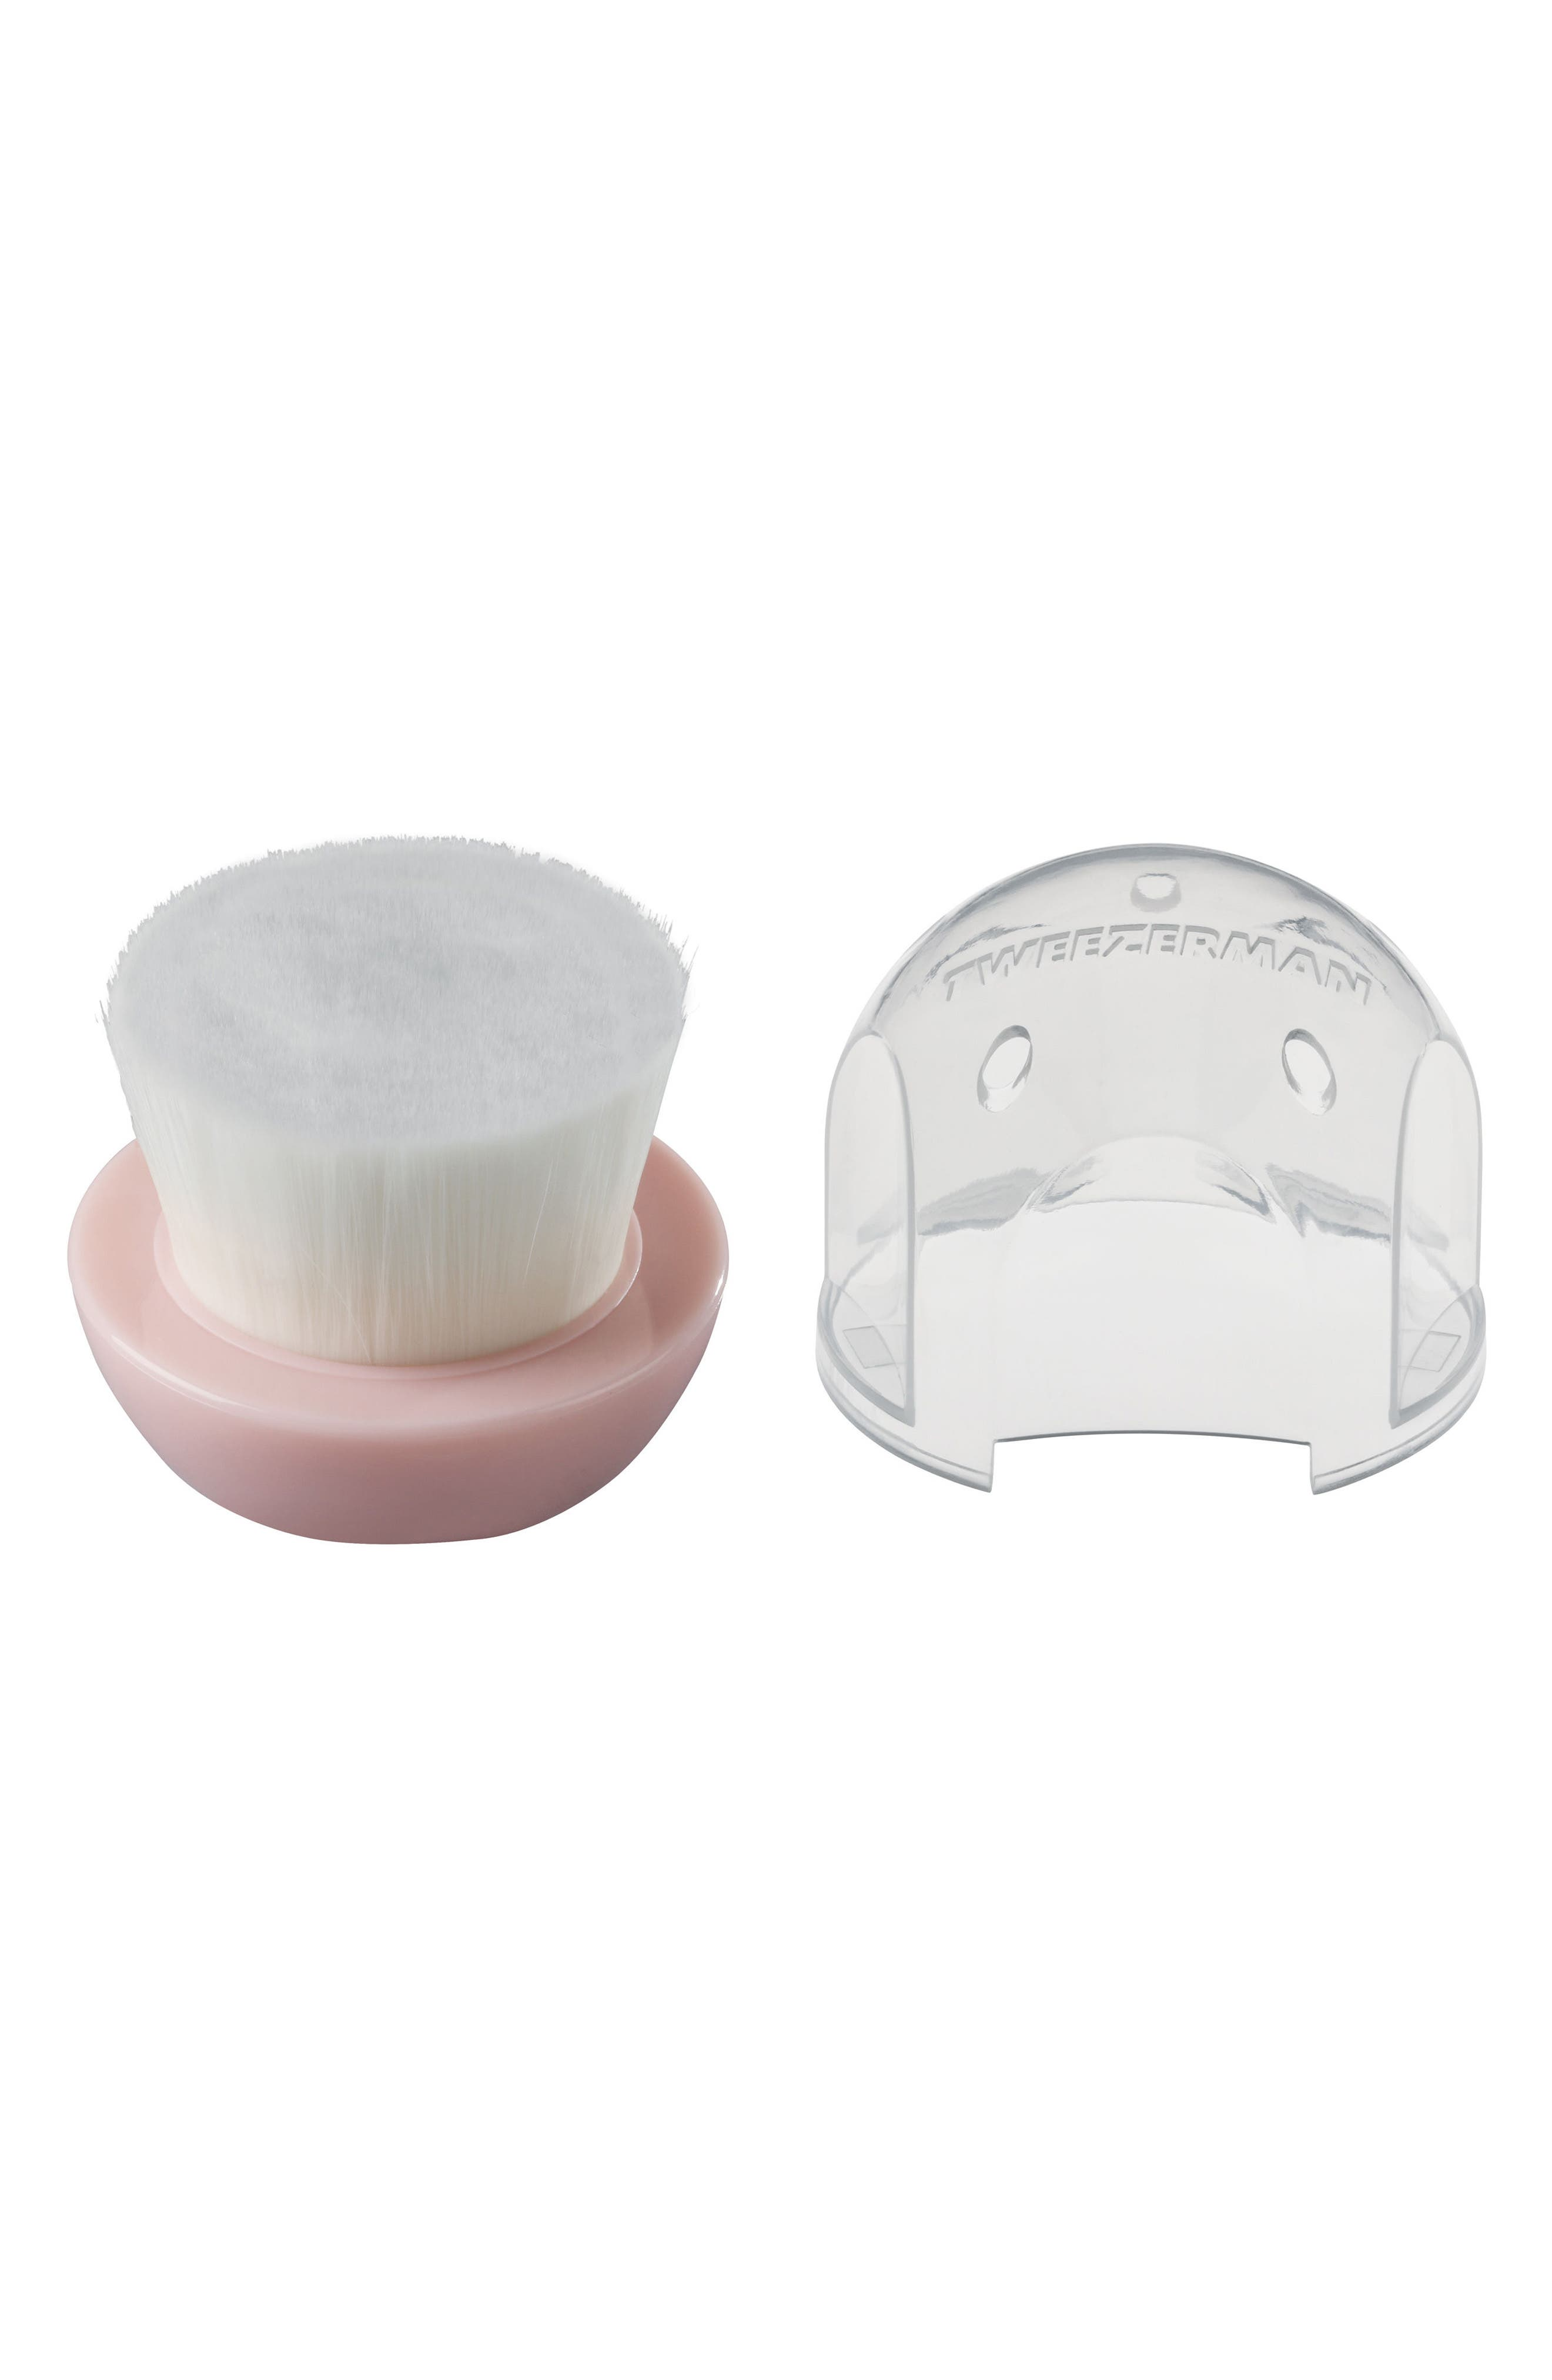 Complexion Cleansing Brush,                             Alternate thumbnail 2, color,                             000